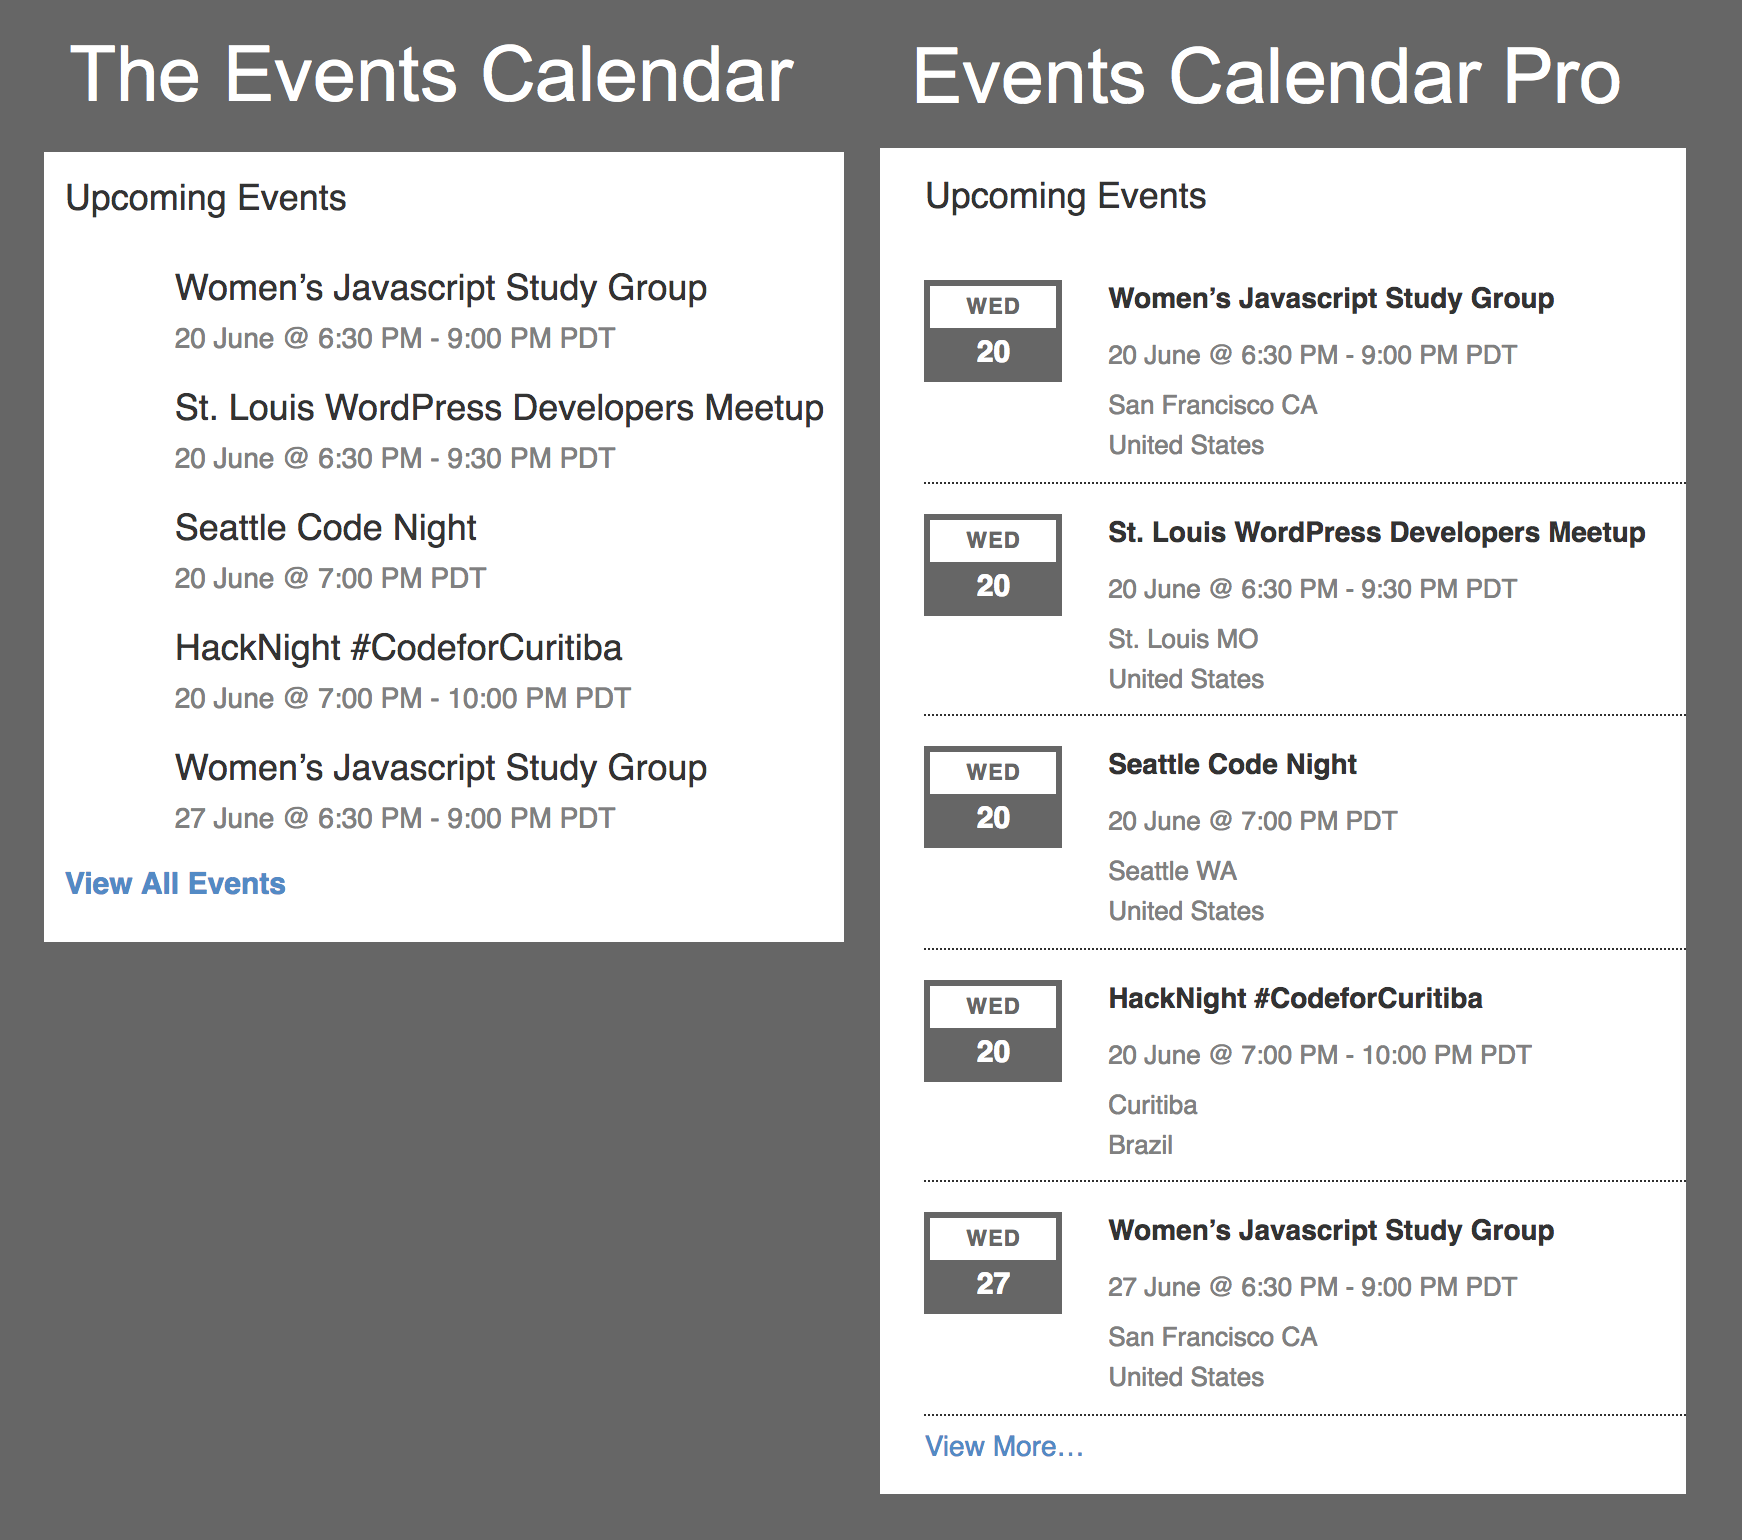 Event List Widget in The Events Calendar vs Events Calendar Pro